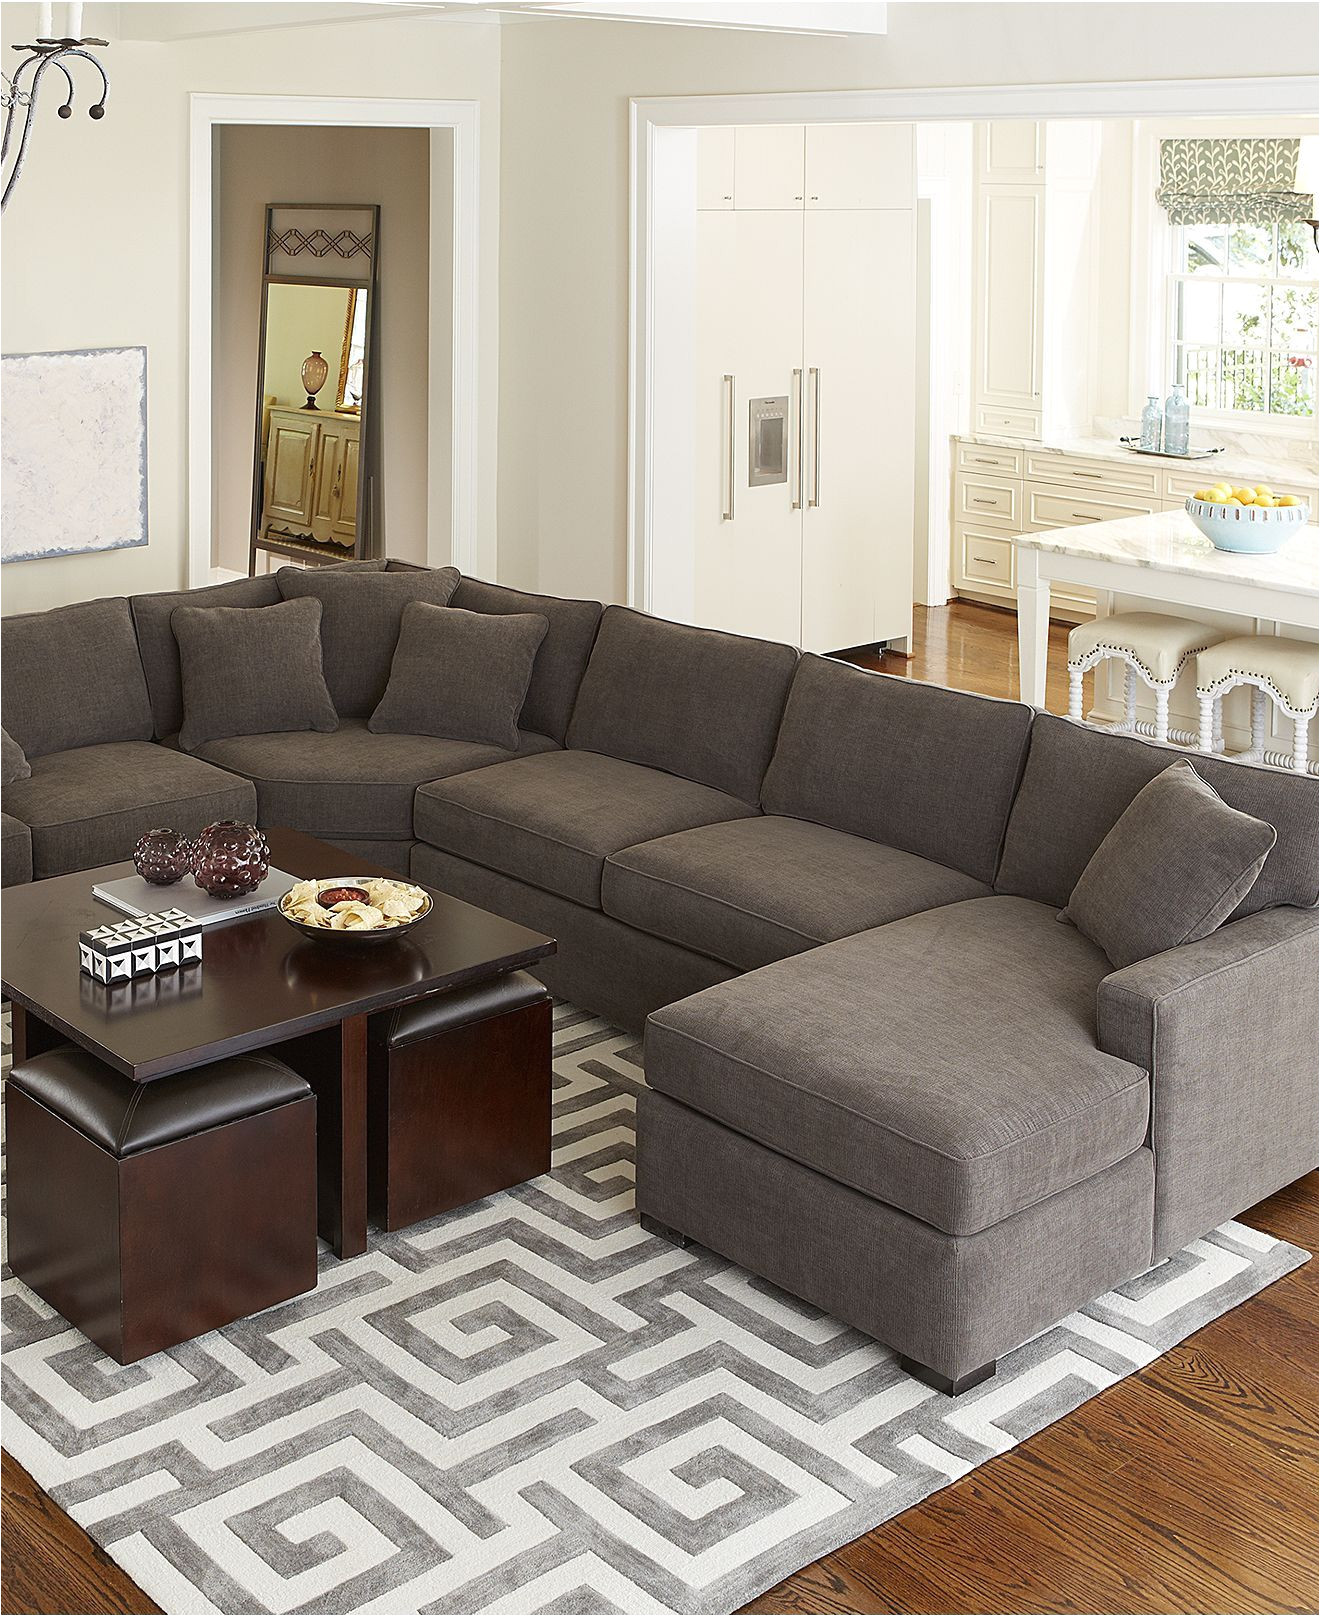 Bettsofa Florida 90 Inch Sectional Sofa Adinaporter